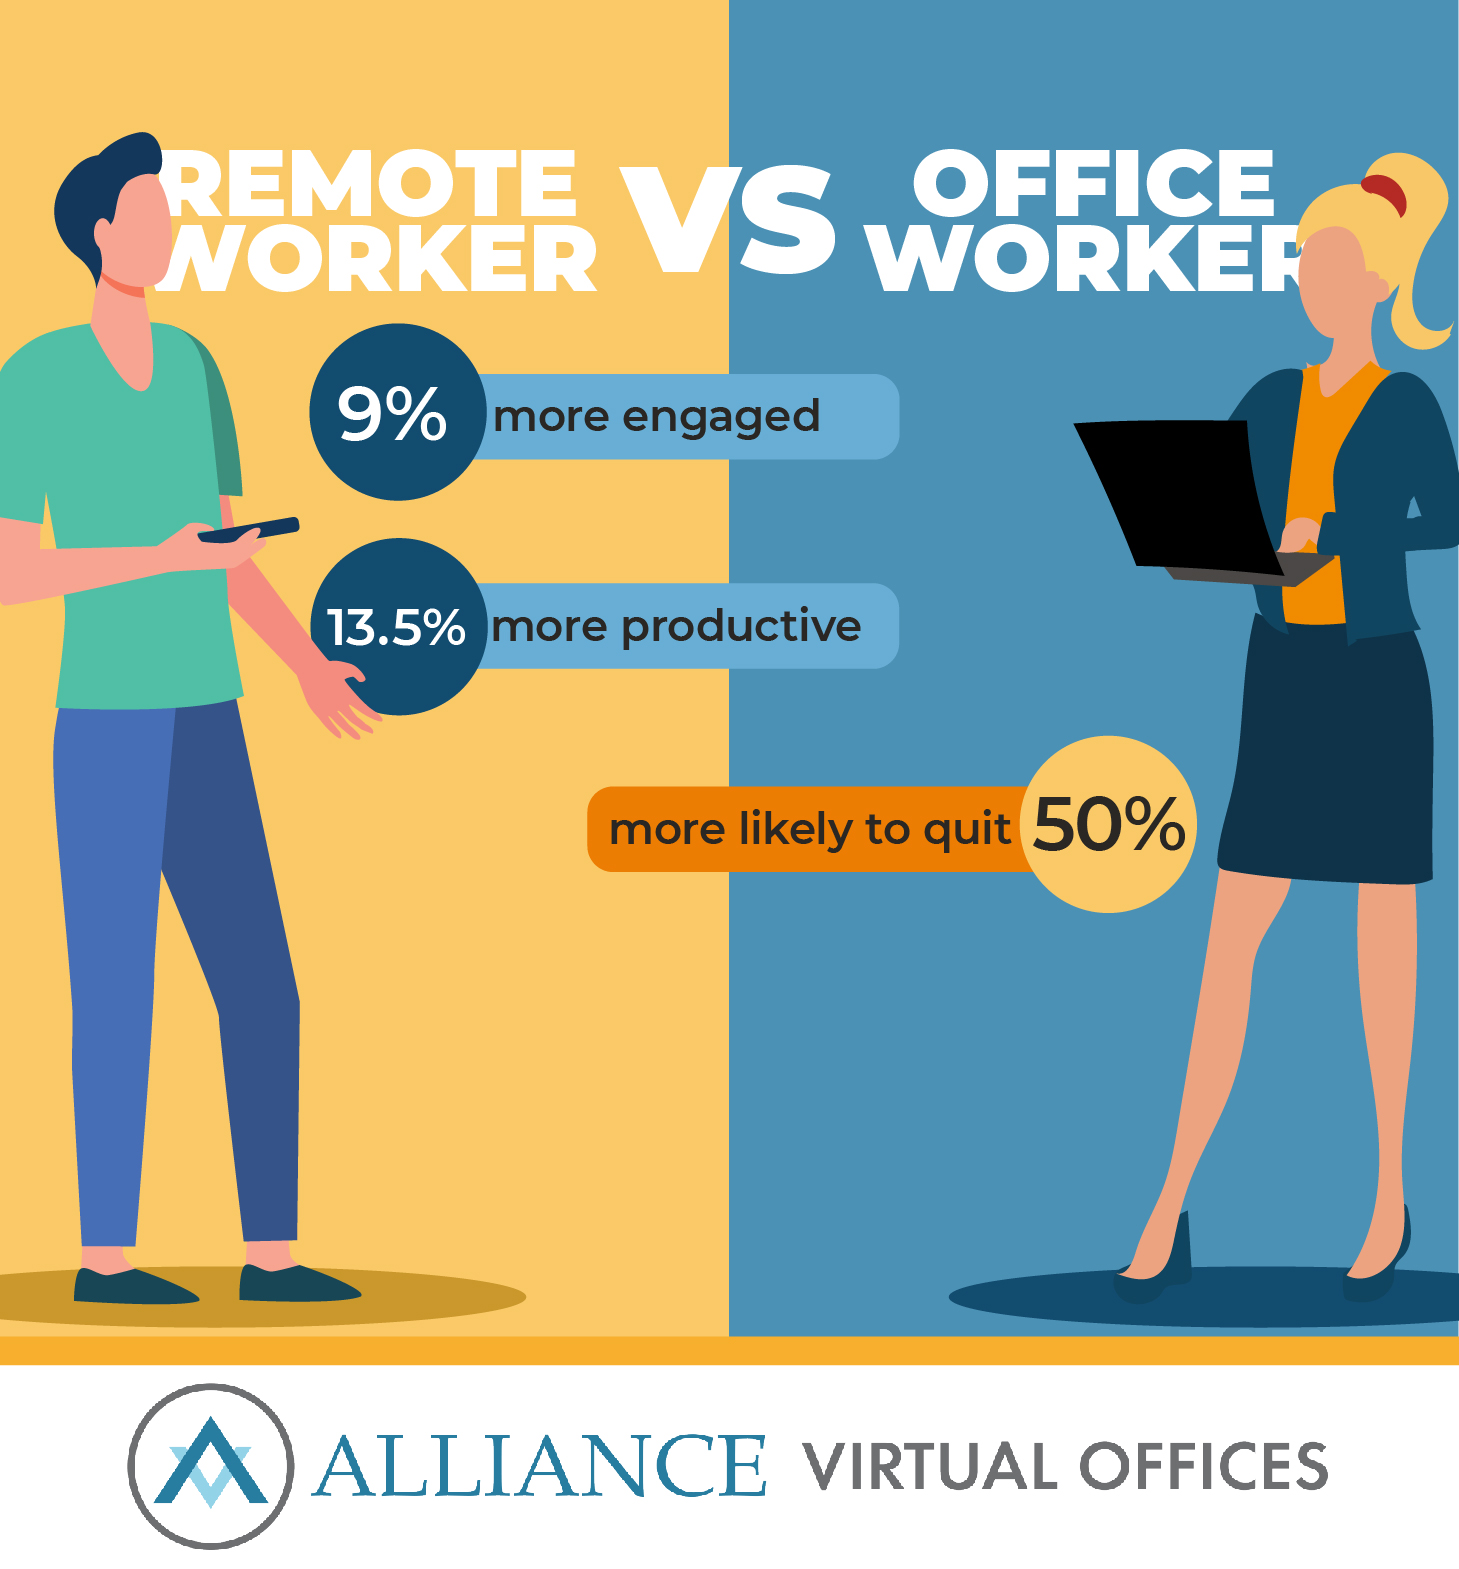 According to a two-year study by Stanford University, remote workers are, on average, 9% more engaged and 13.5% more productive than their office-based counterparts.